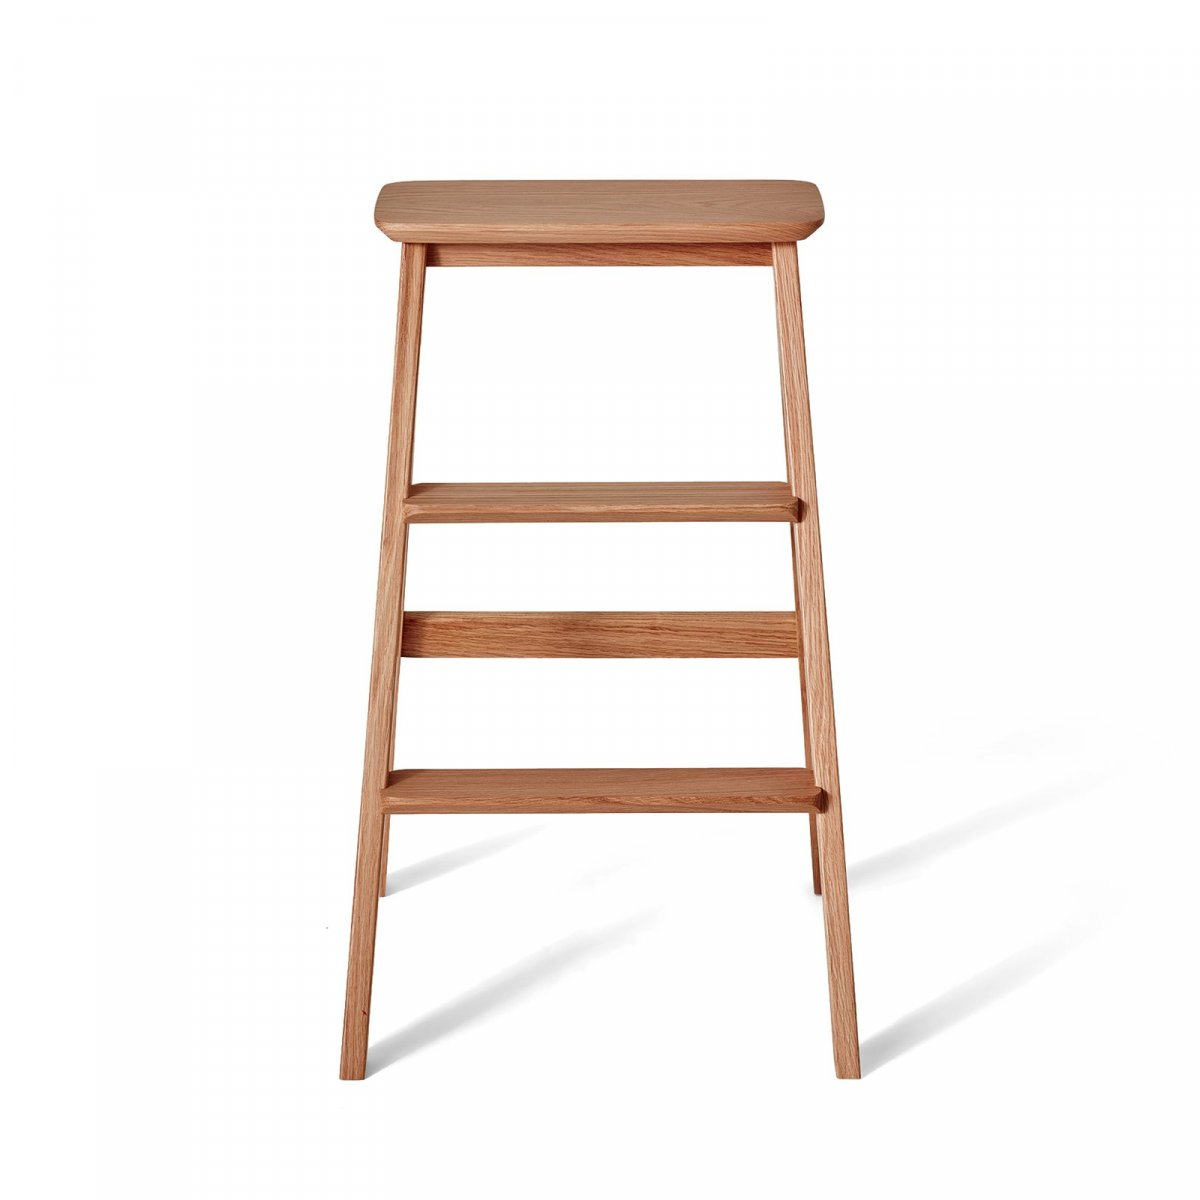 SO/HO Stool, front view.